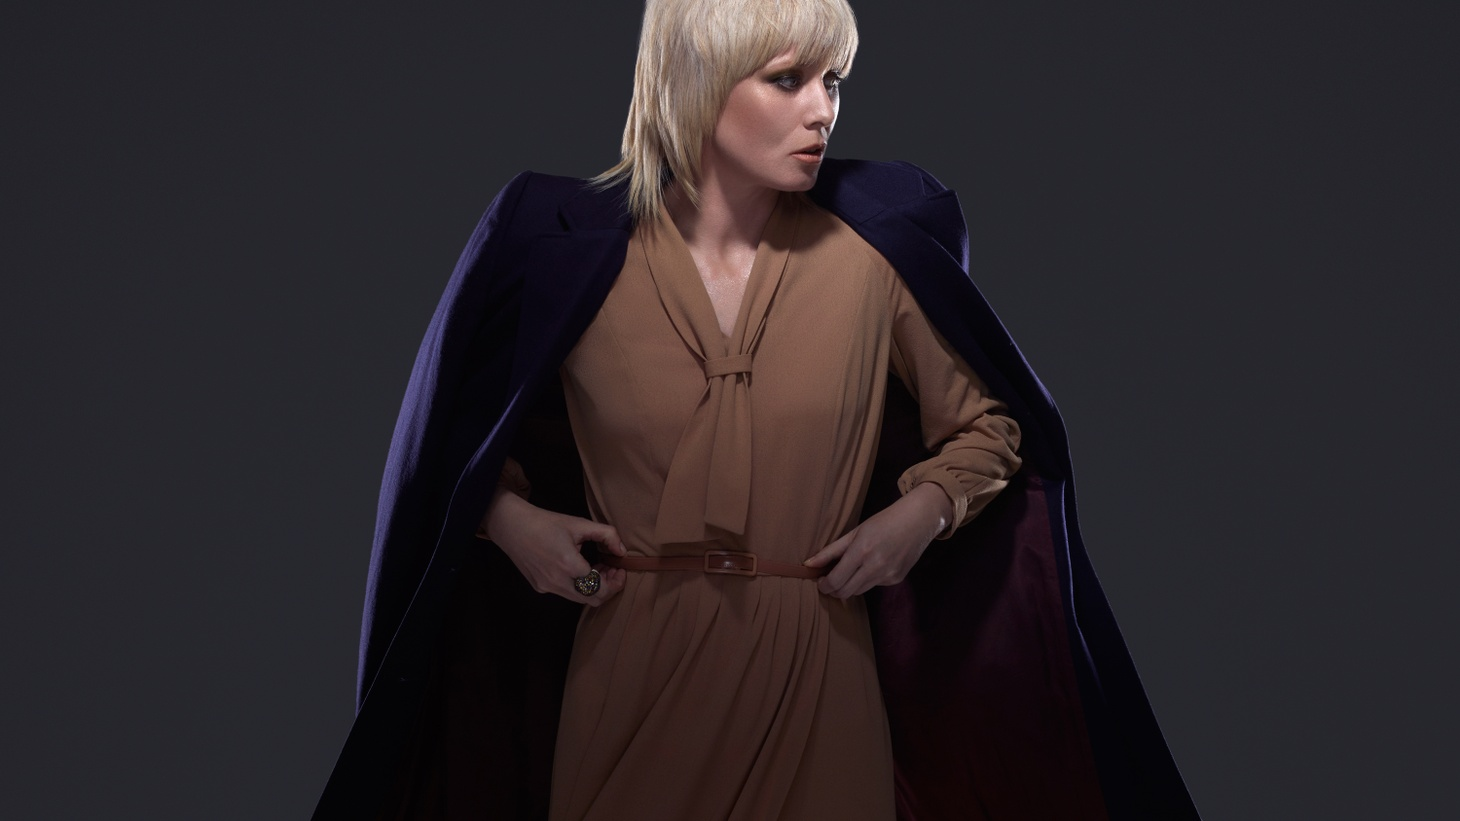 Irish artist Róisín Murphy first came to music fans' attention as one half of the electro-pop duo Moloko, but she has become an acclaimed solo artist in her own right.